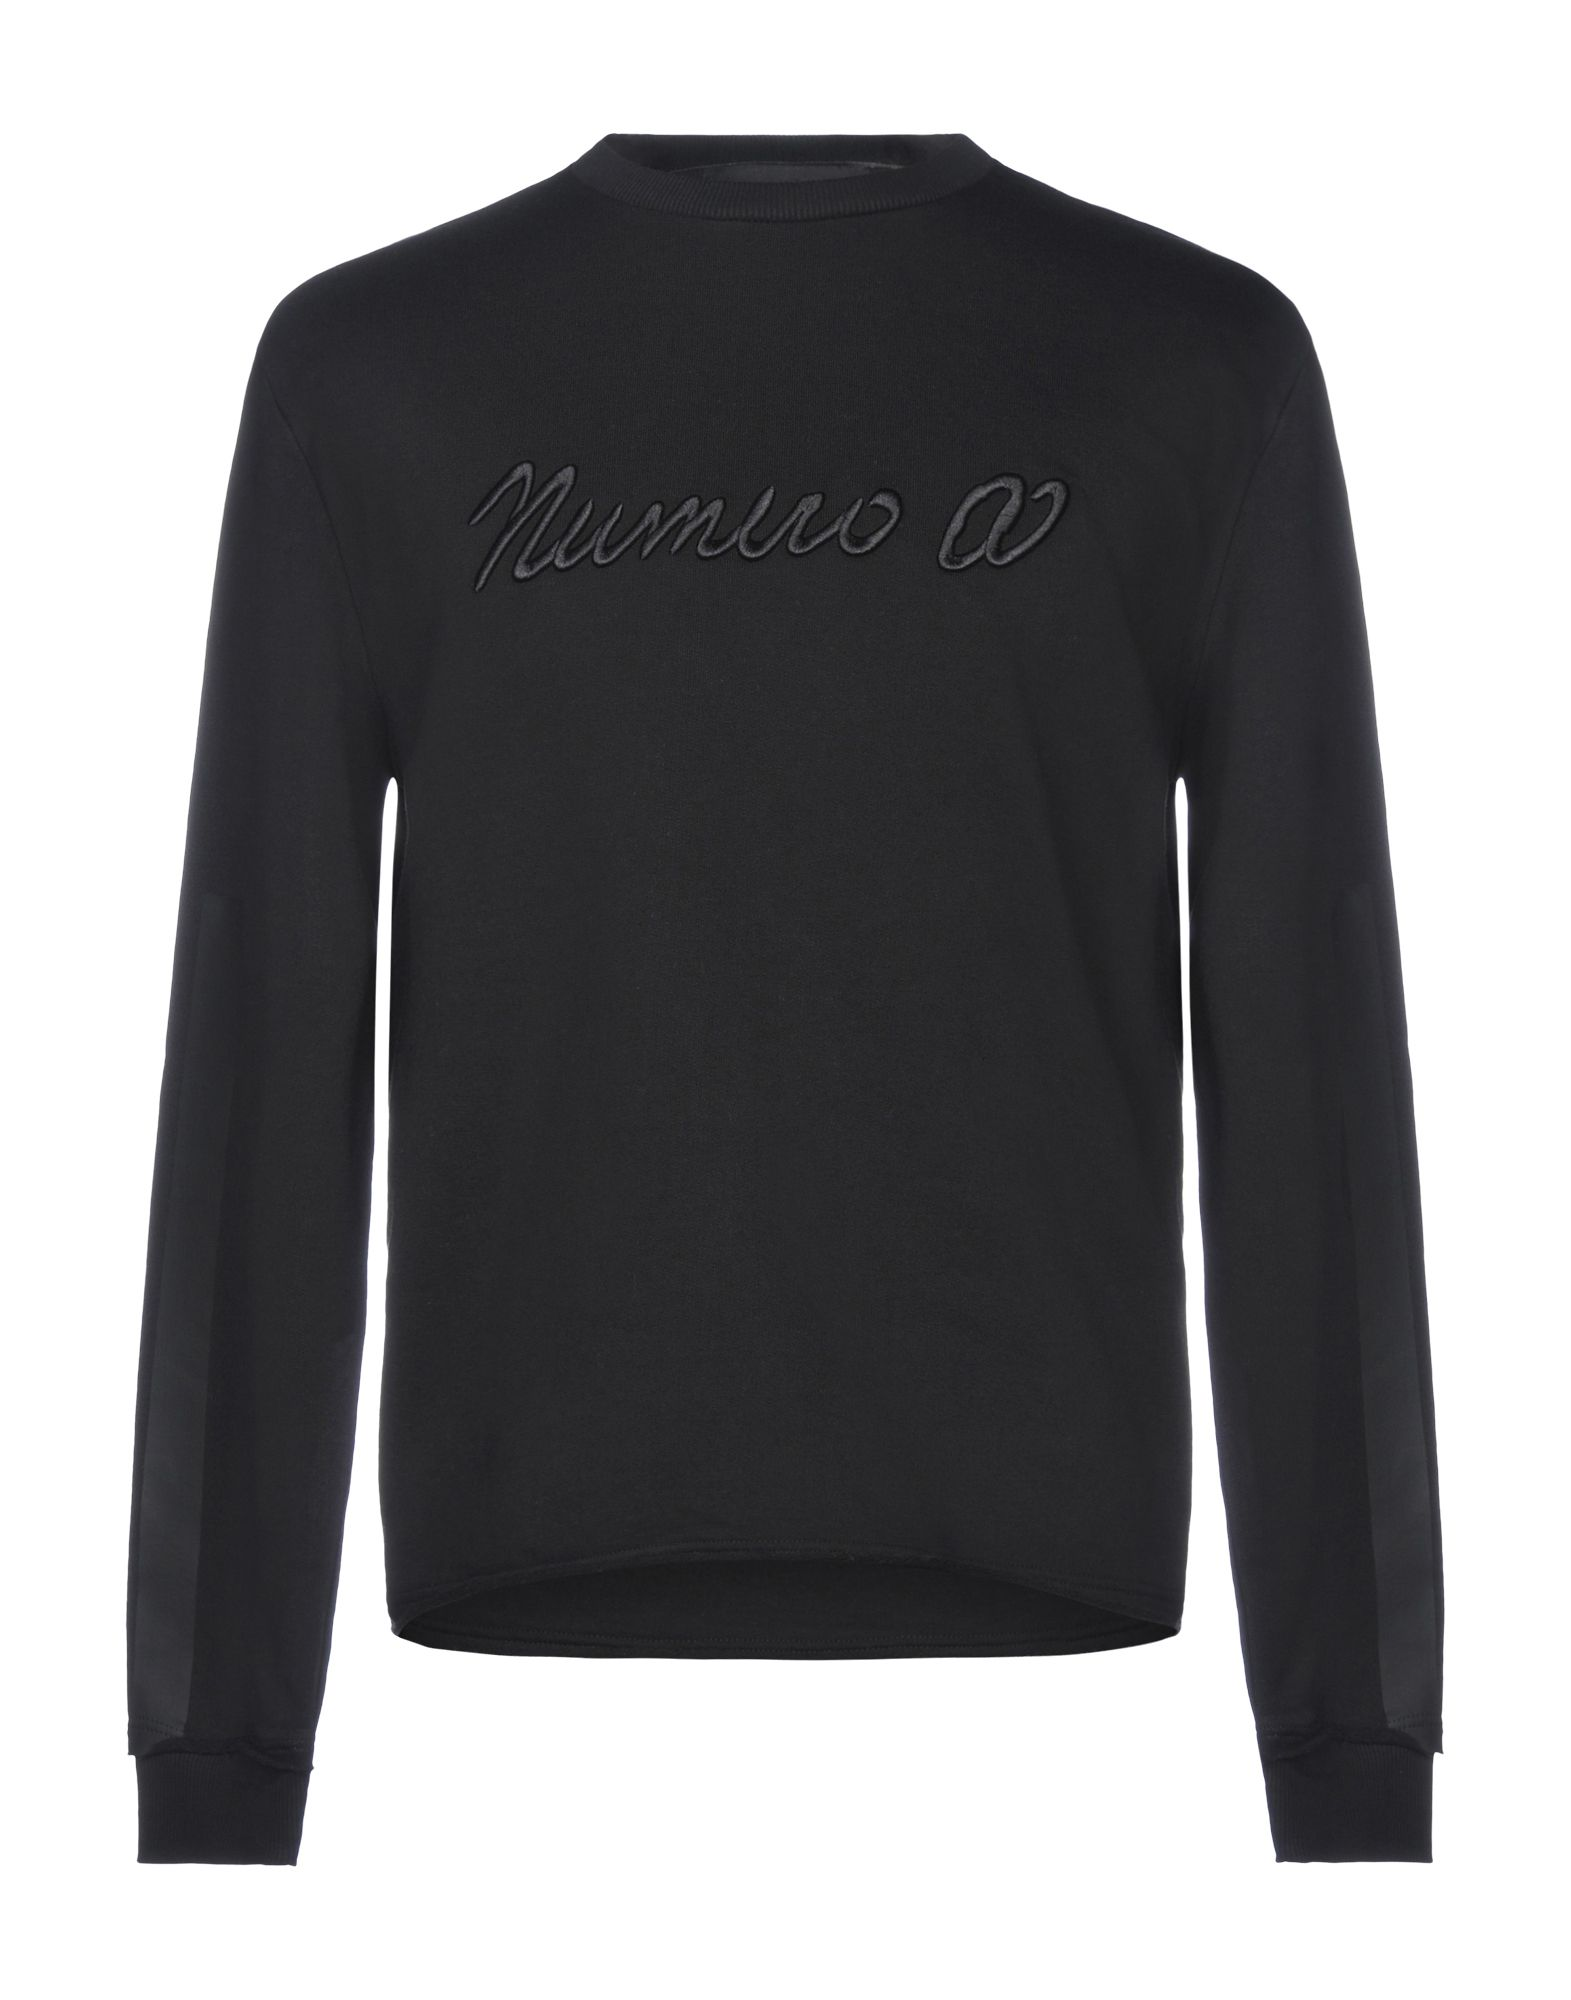 NUMERO00 Sweatshirt in Black